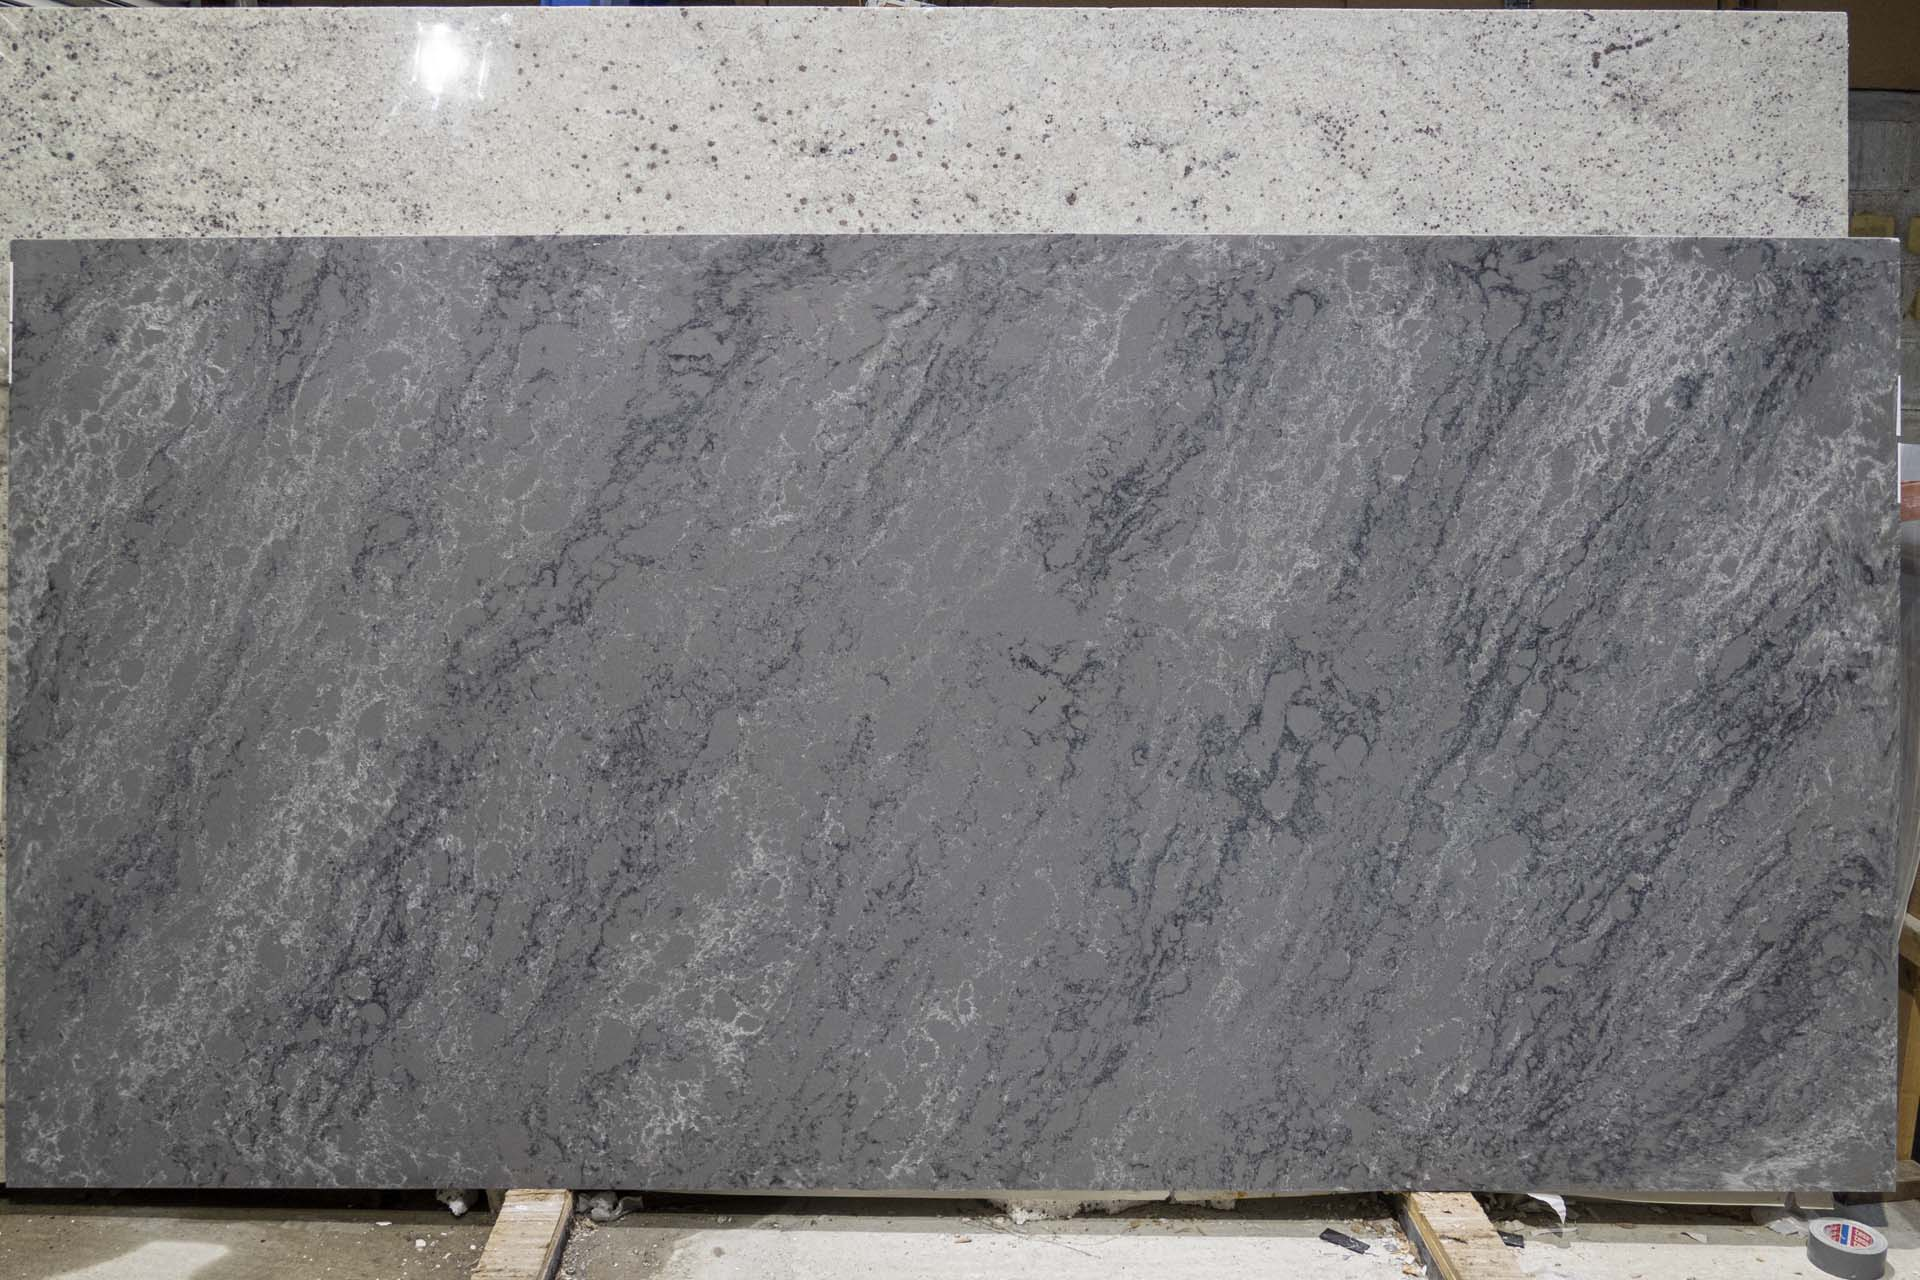 Bloomstone Storm Grey Quartz BL191203 37086 161749 a